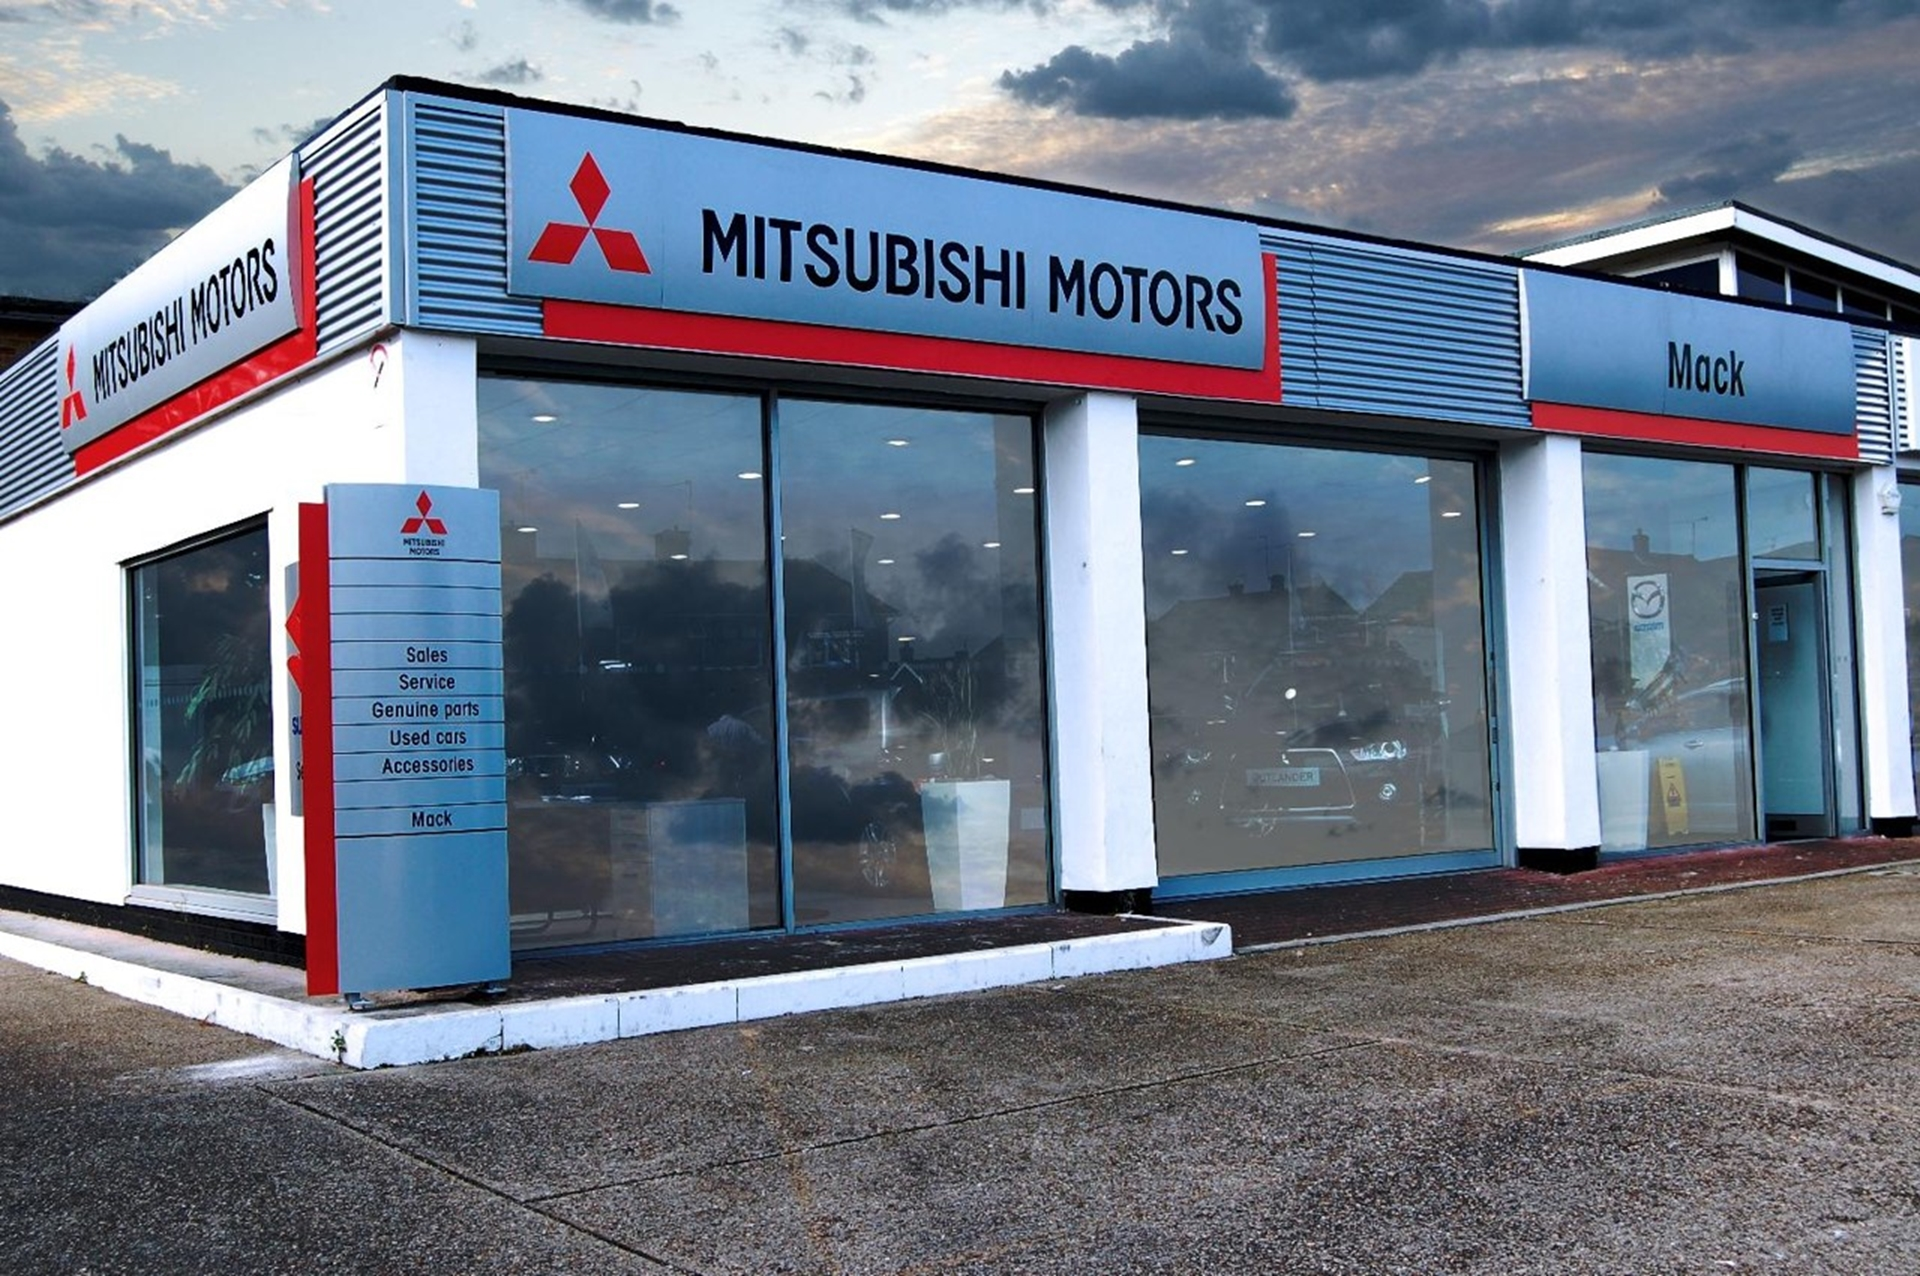 Mitsubishi Motors In The Uk Announces New Dealer In Essex